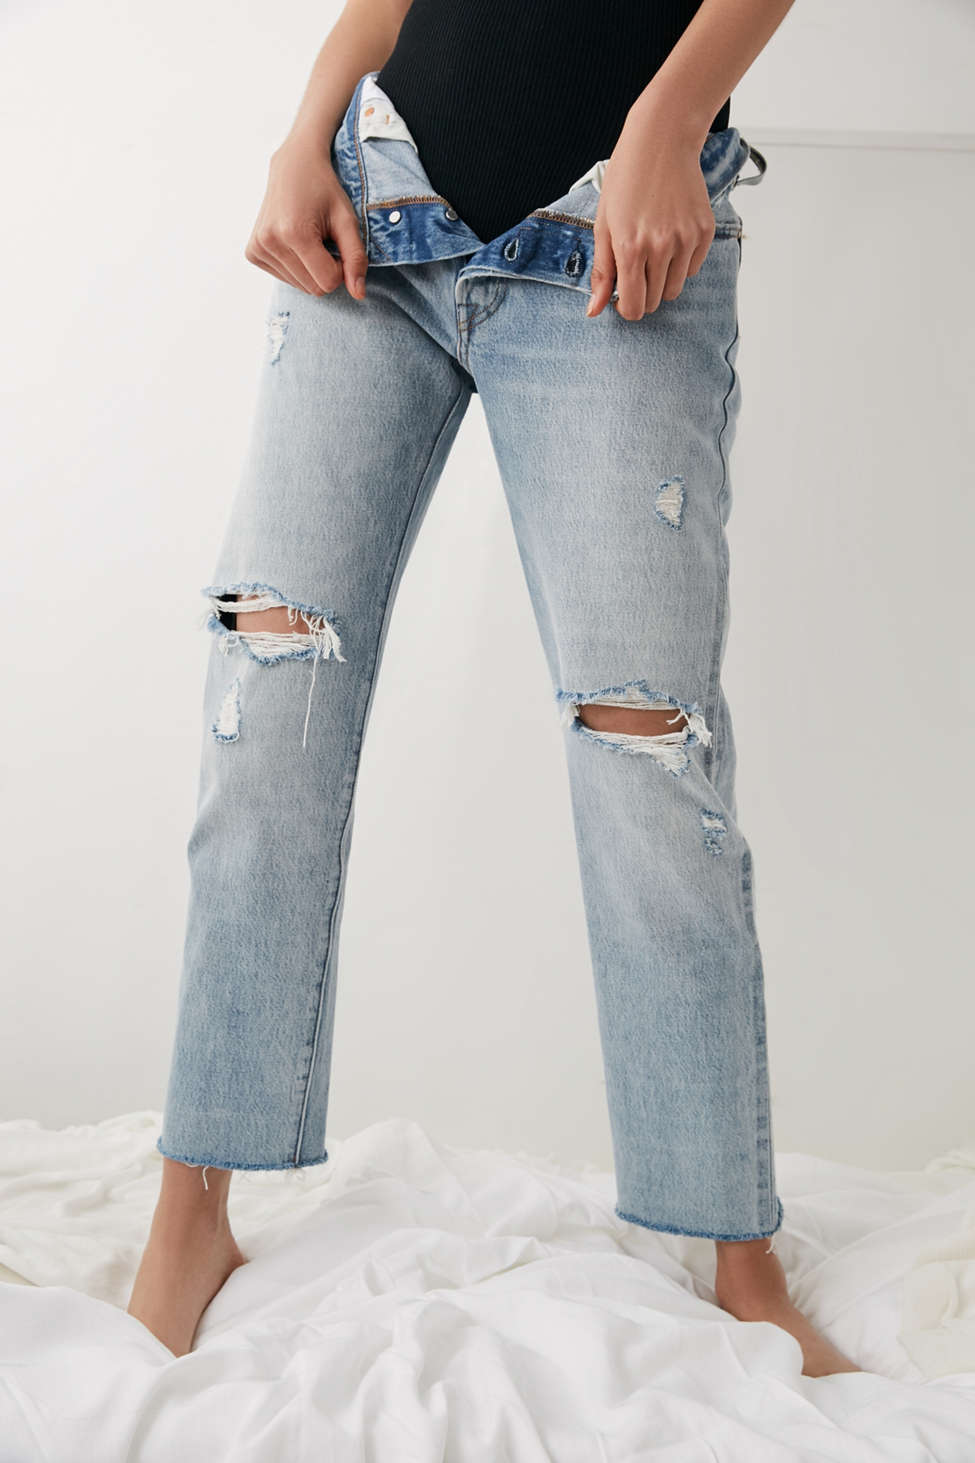 501 Crop Jean with Rips - Crazy cool Levi's